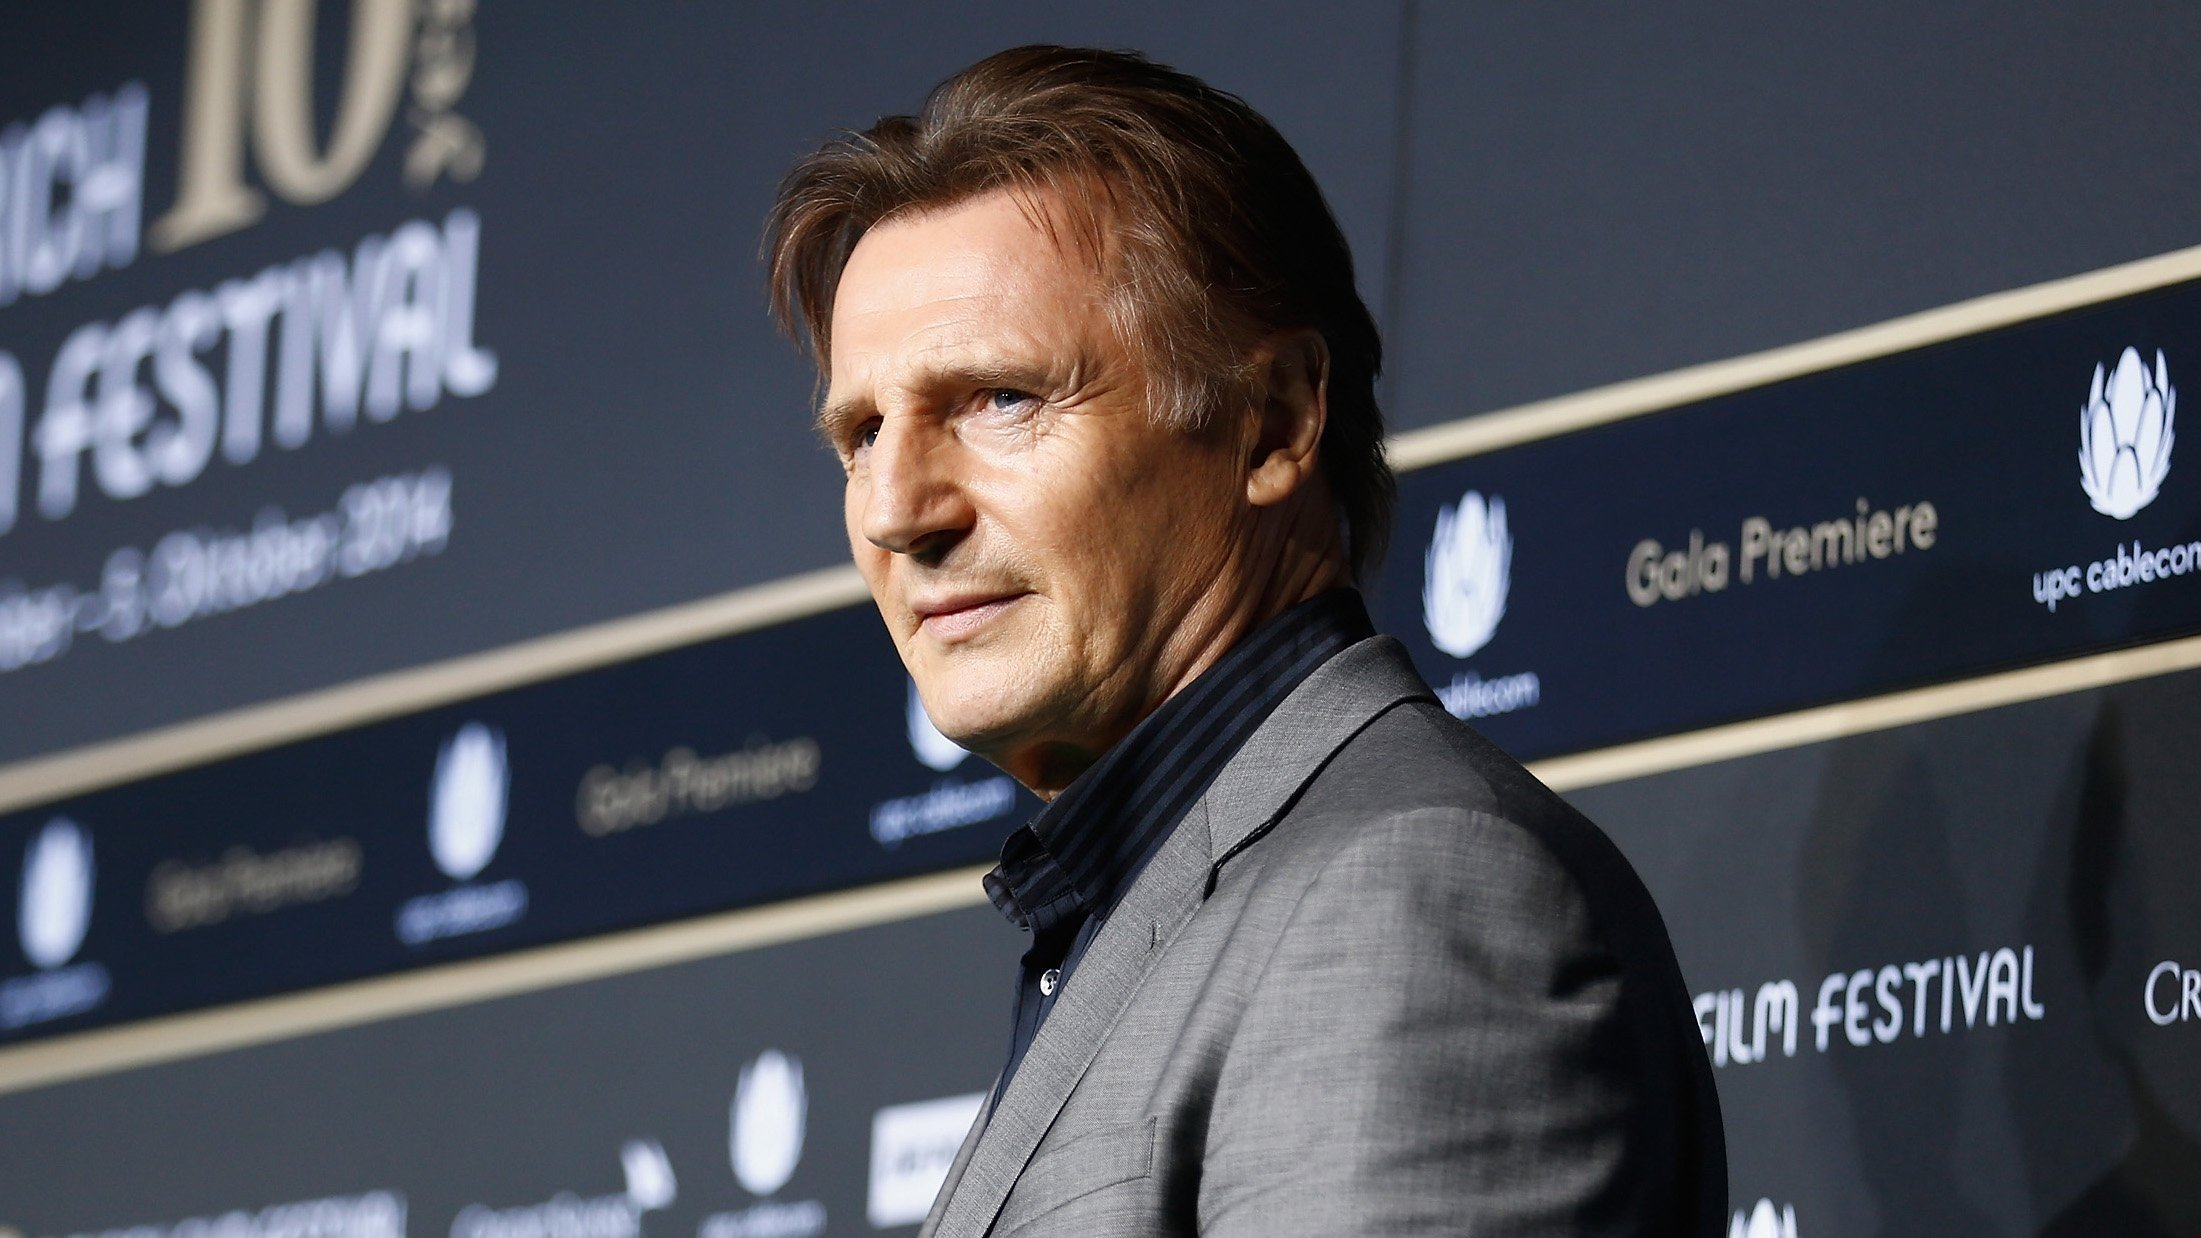 Actor Liam Neeson, 65, became known for pummeling bad guys on the big screen.